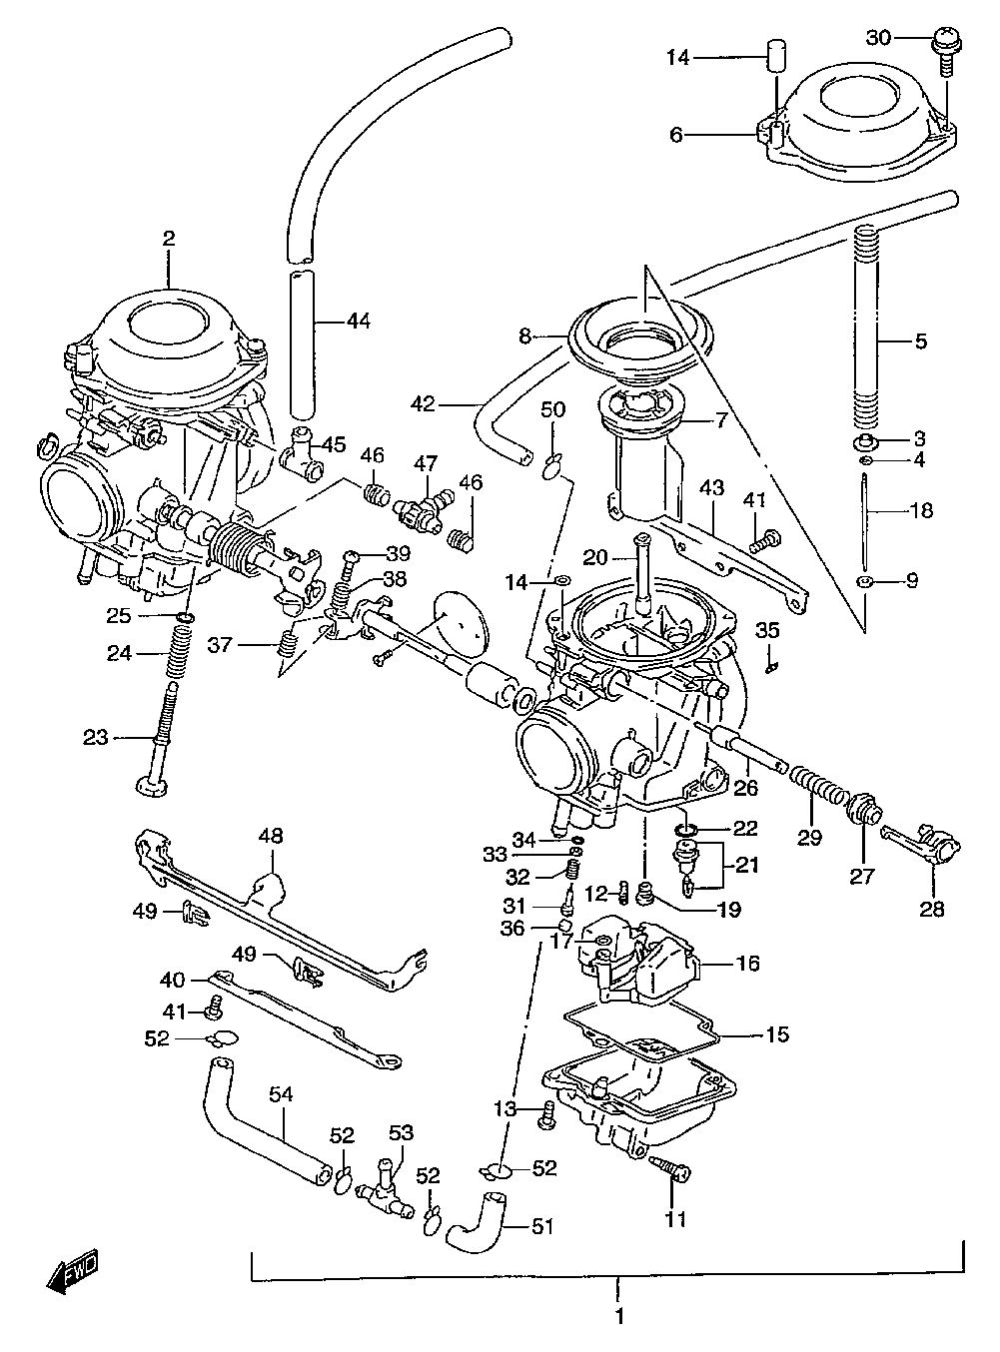 medium resolution of  fuse panel diagram gs500ecarburetorv 97 w 98 x 99 y